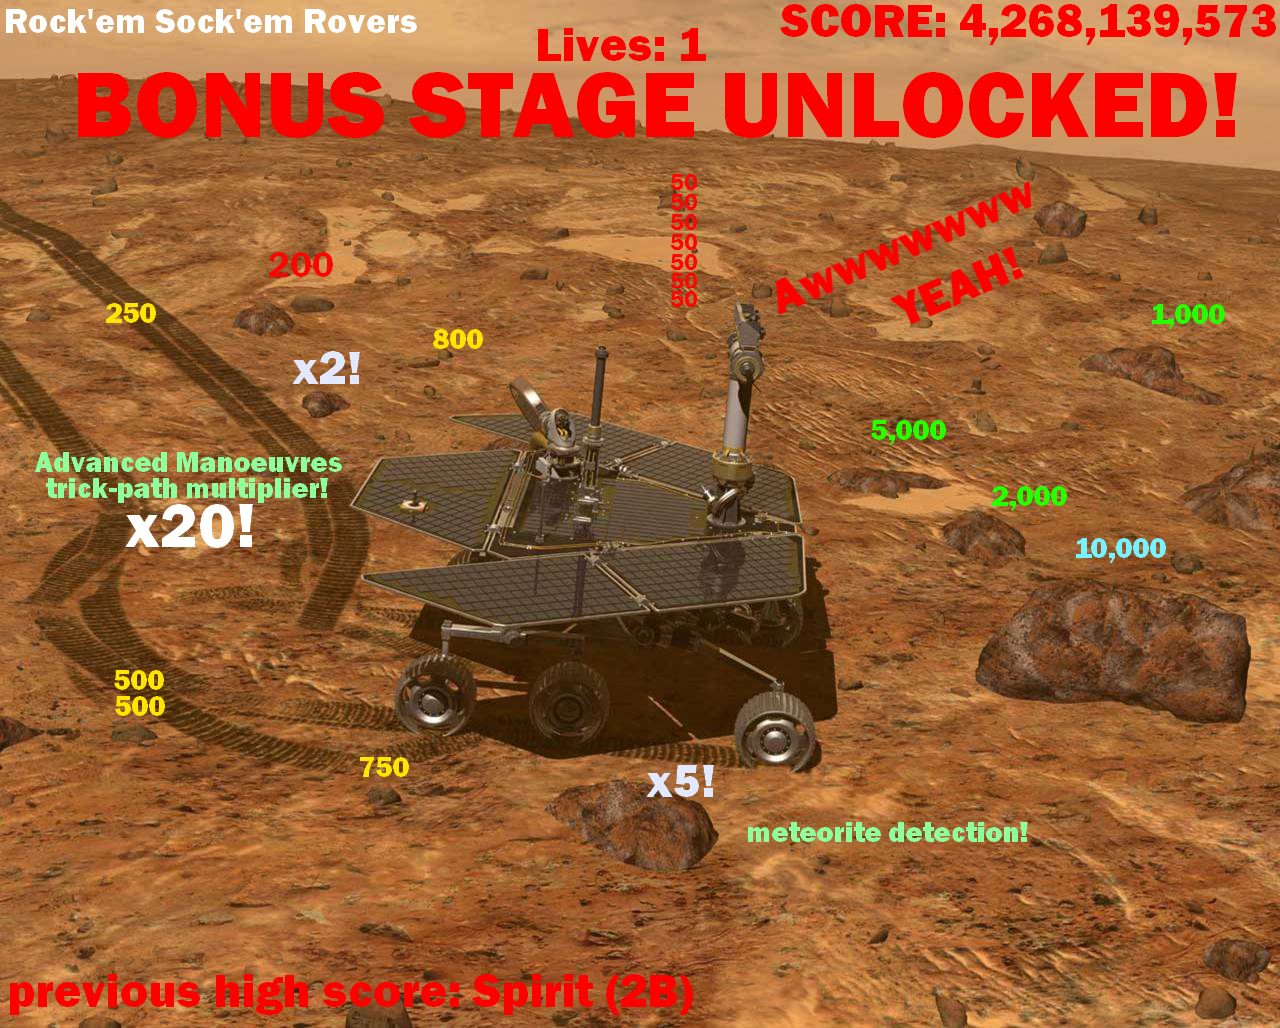 the game mars rover - photo #39